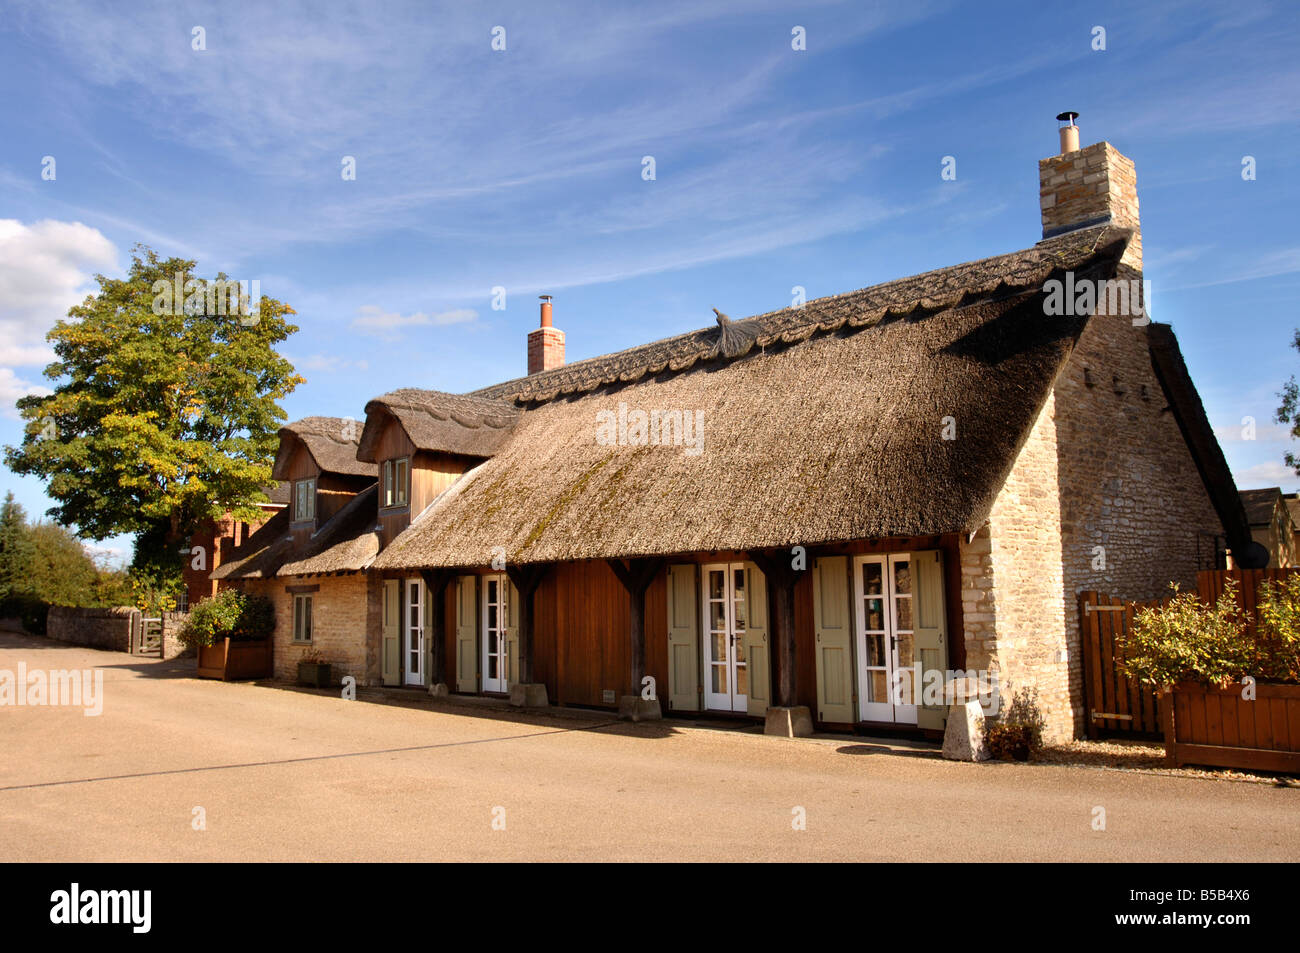 A CONVERTED COTTAGE AT THE LOWER MILL ESTATE NEAR CIRENCESTER GLOUCESTERSHIRE UK - Stock Image